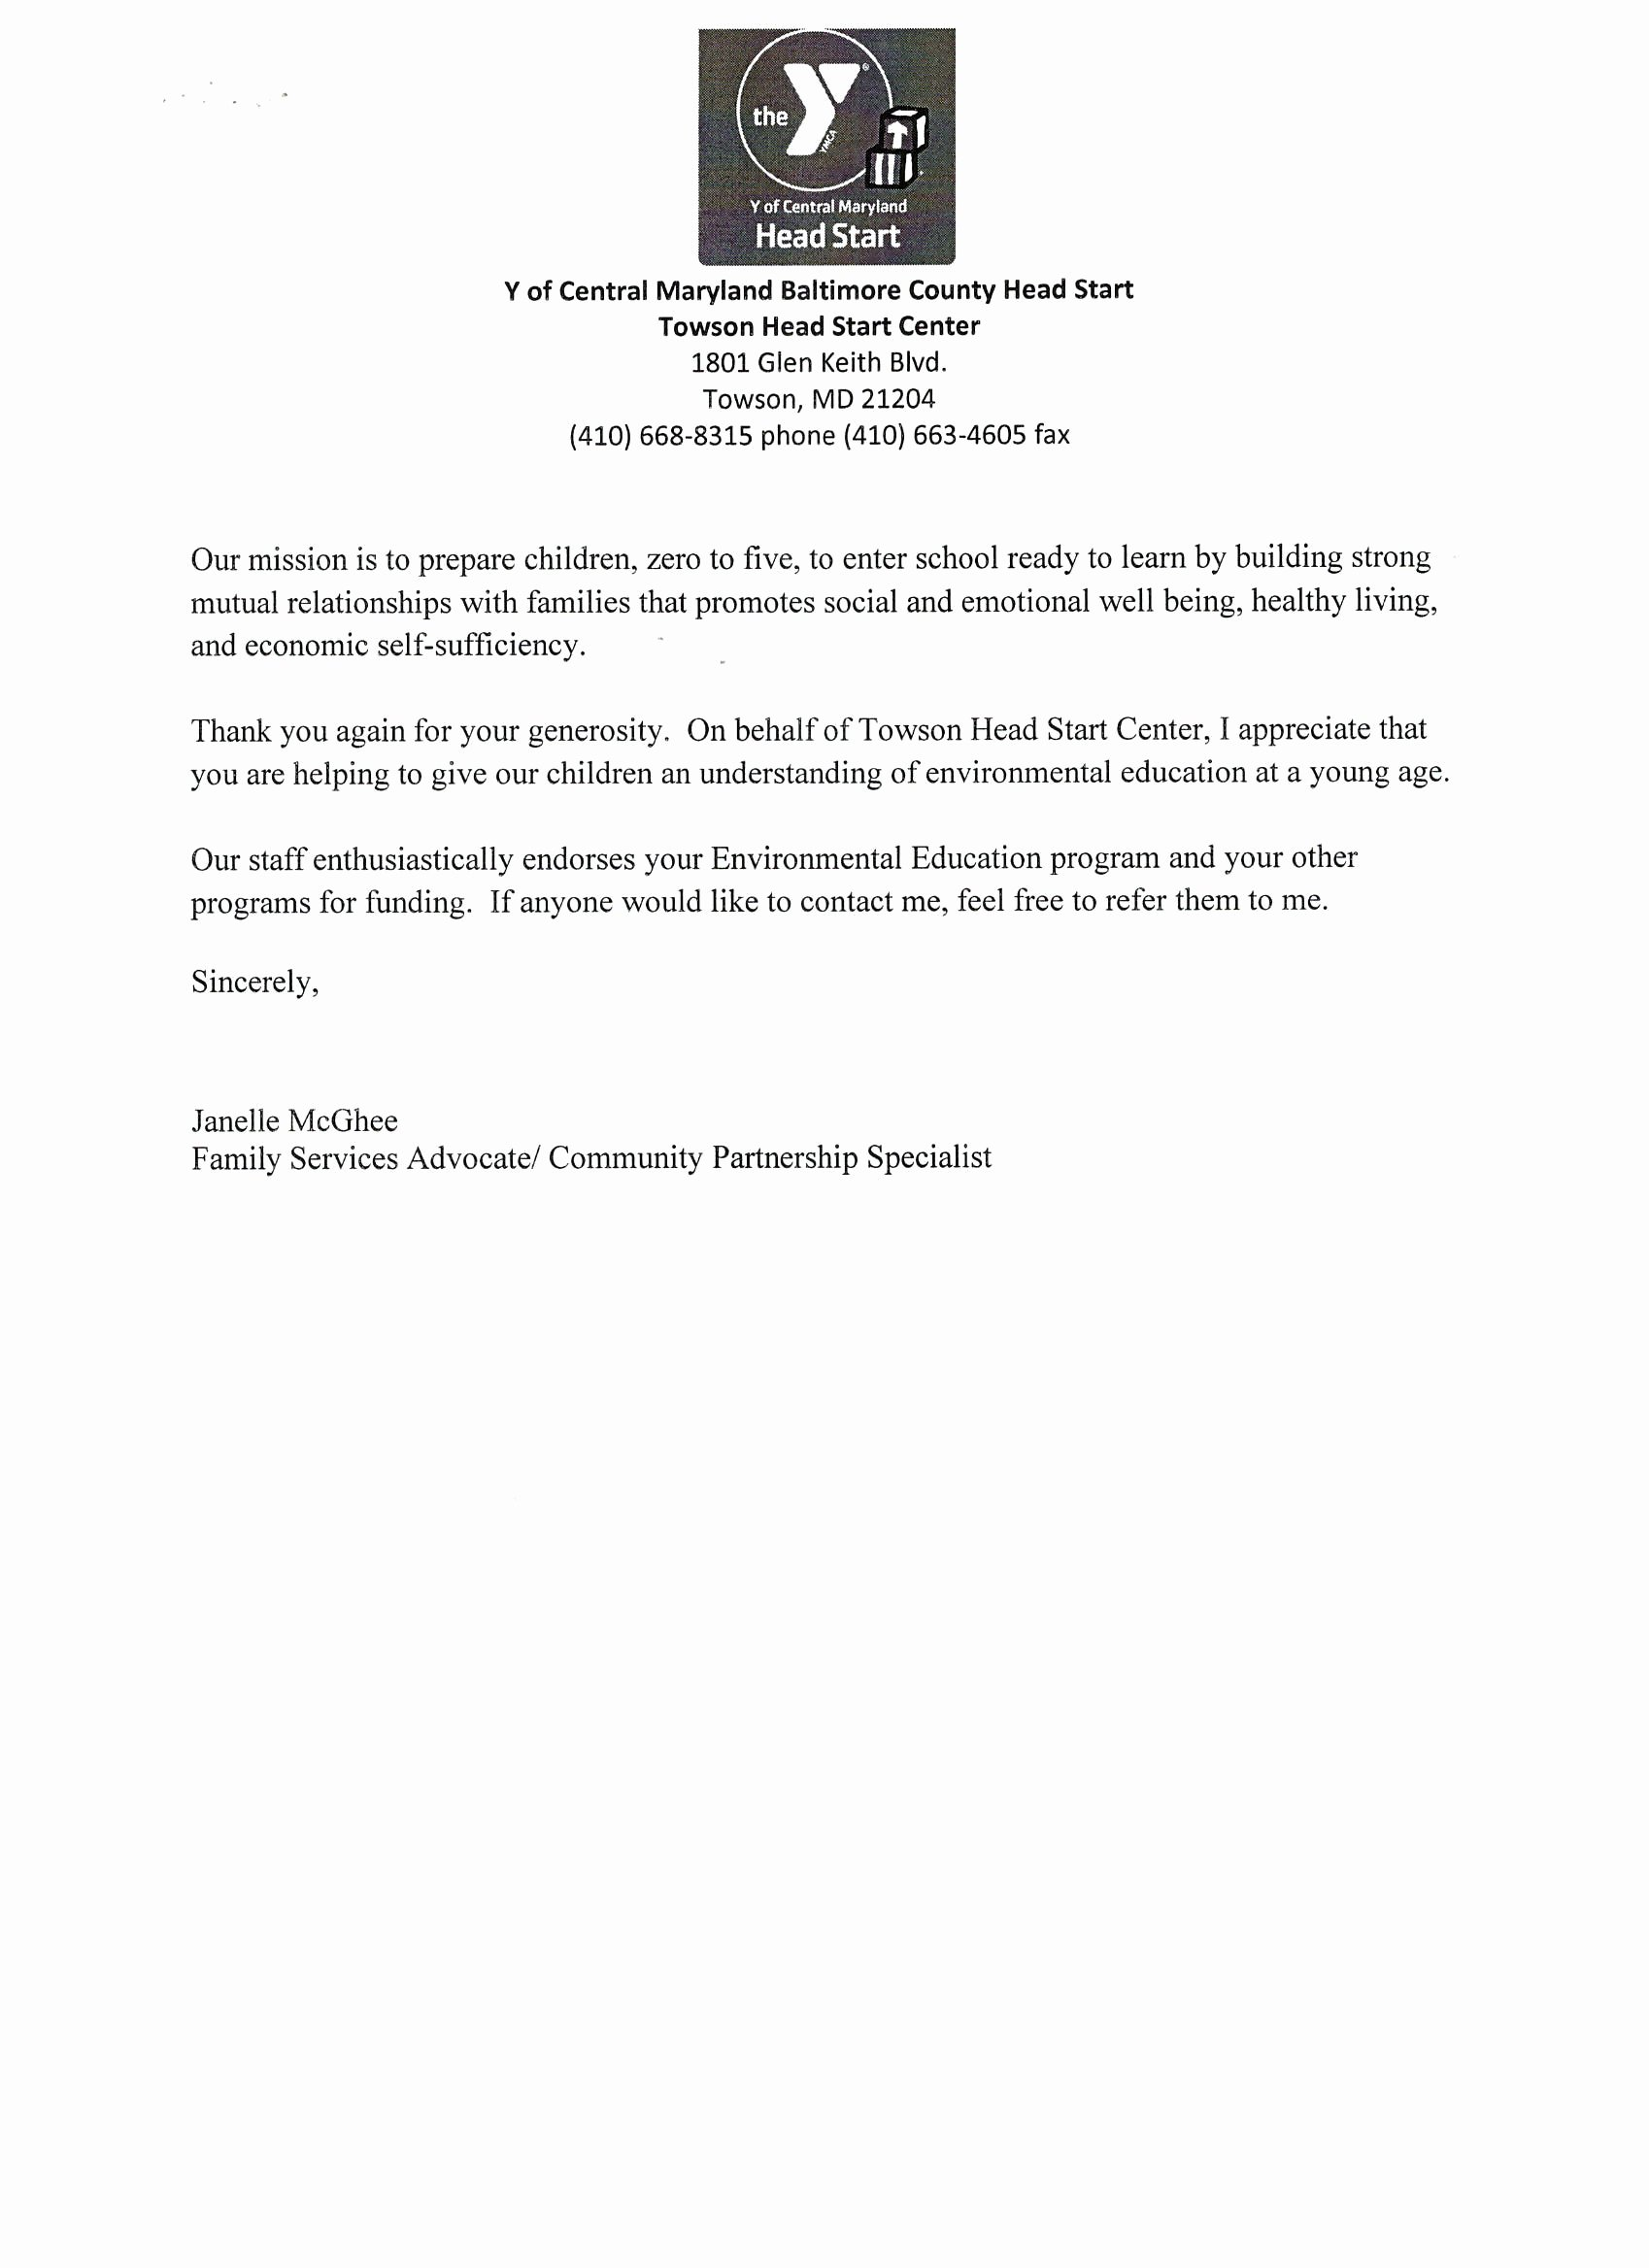 Community Service Recommendation Letter Best Of It S About the Kids Education organization Inc